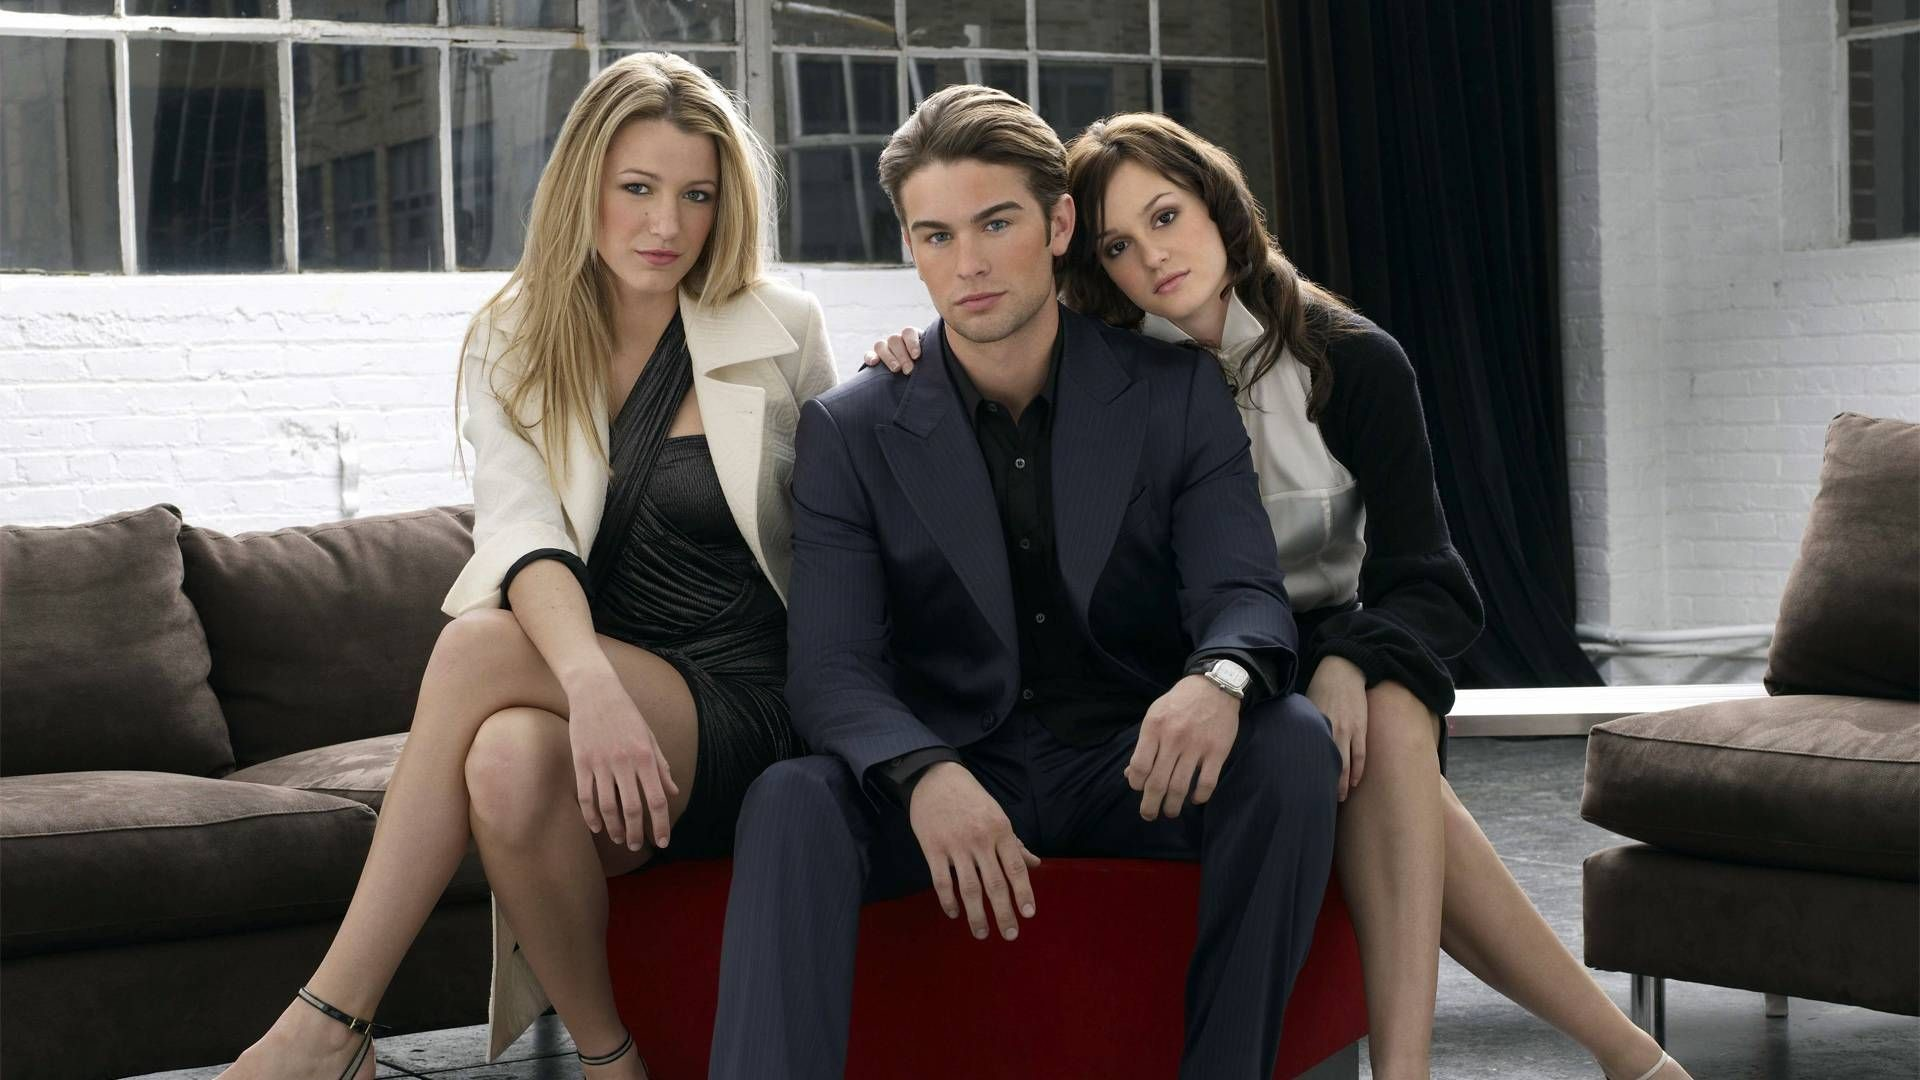 Res: 1920x1080, Blake Lively Leighton Meester Chace Crawford wallpaper